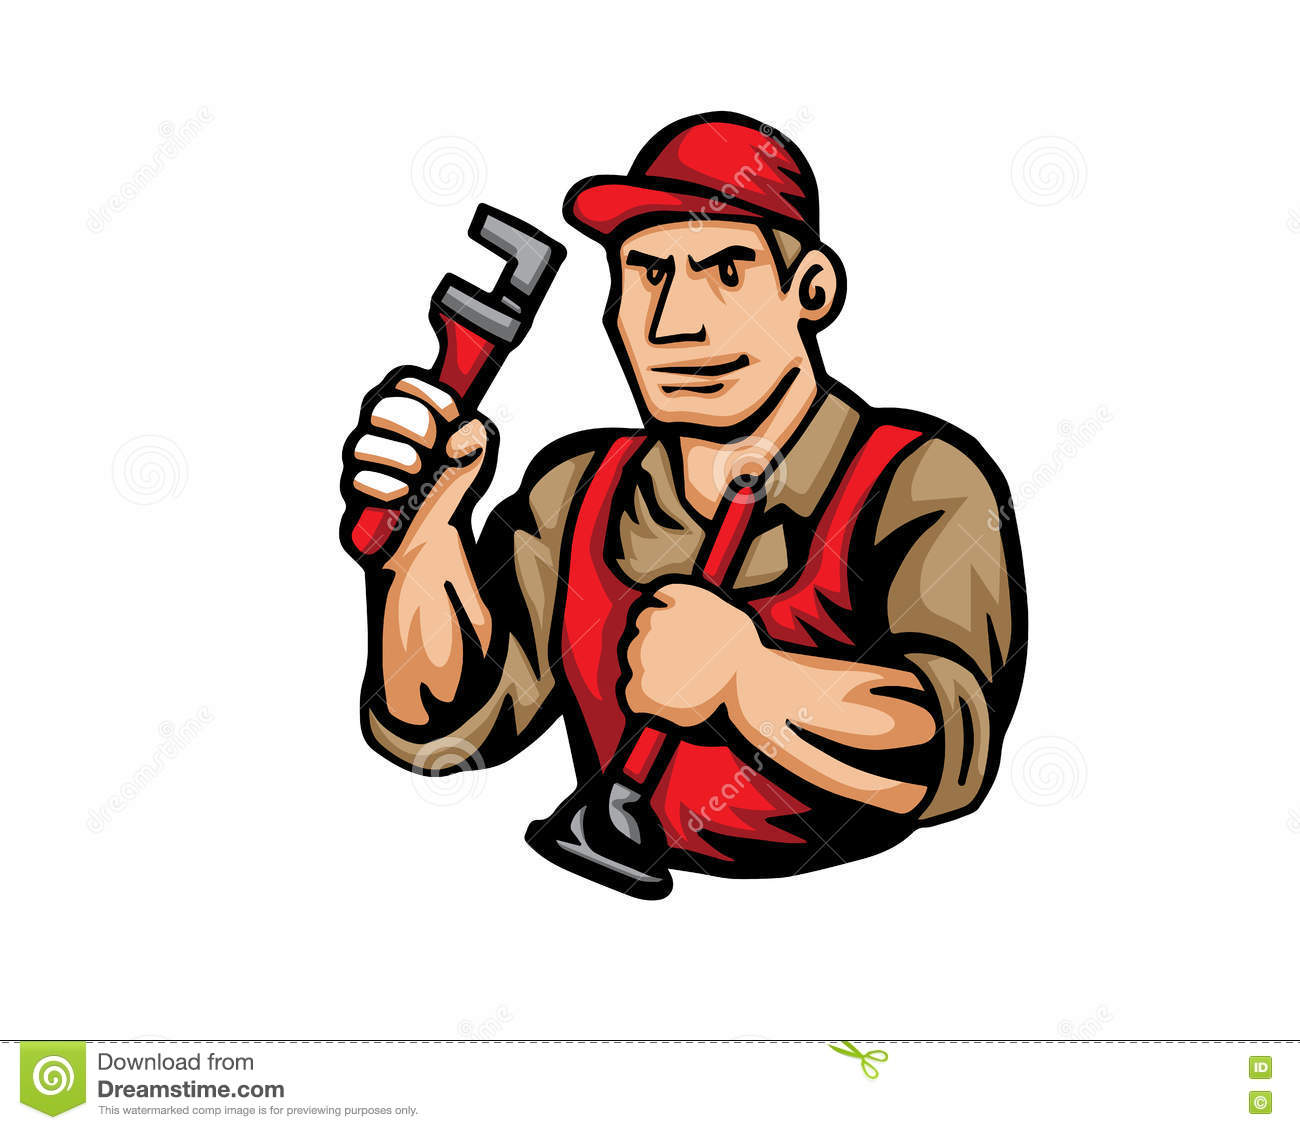 modern-occupation-people-cartoon-logo-plumber-76700449.jpg